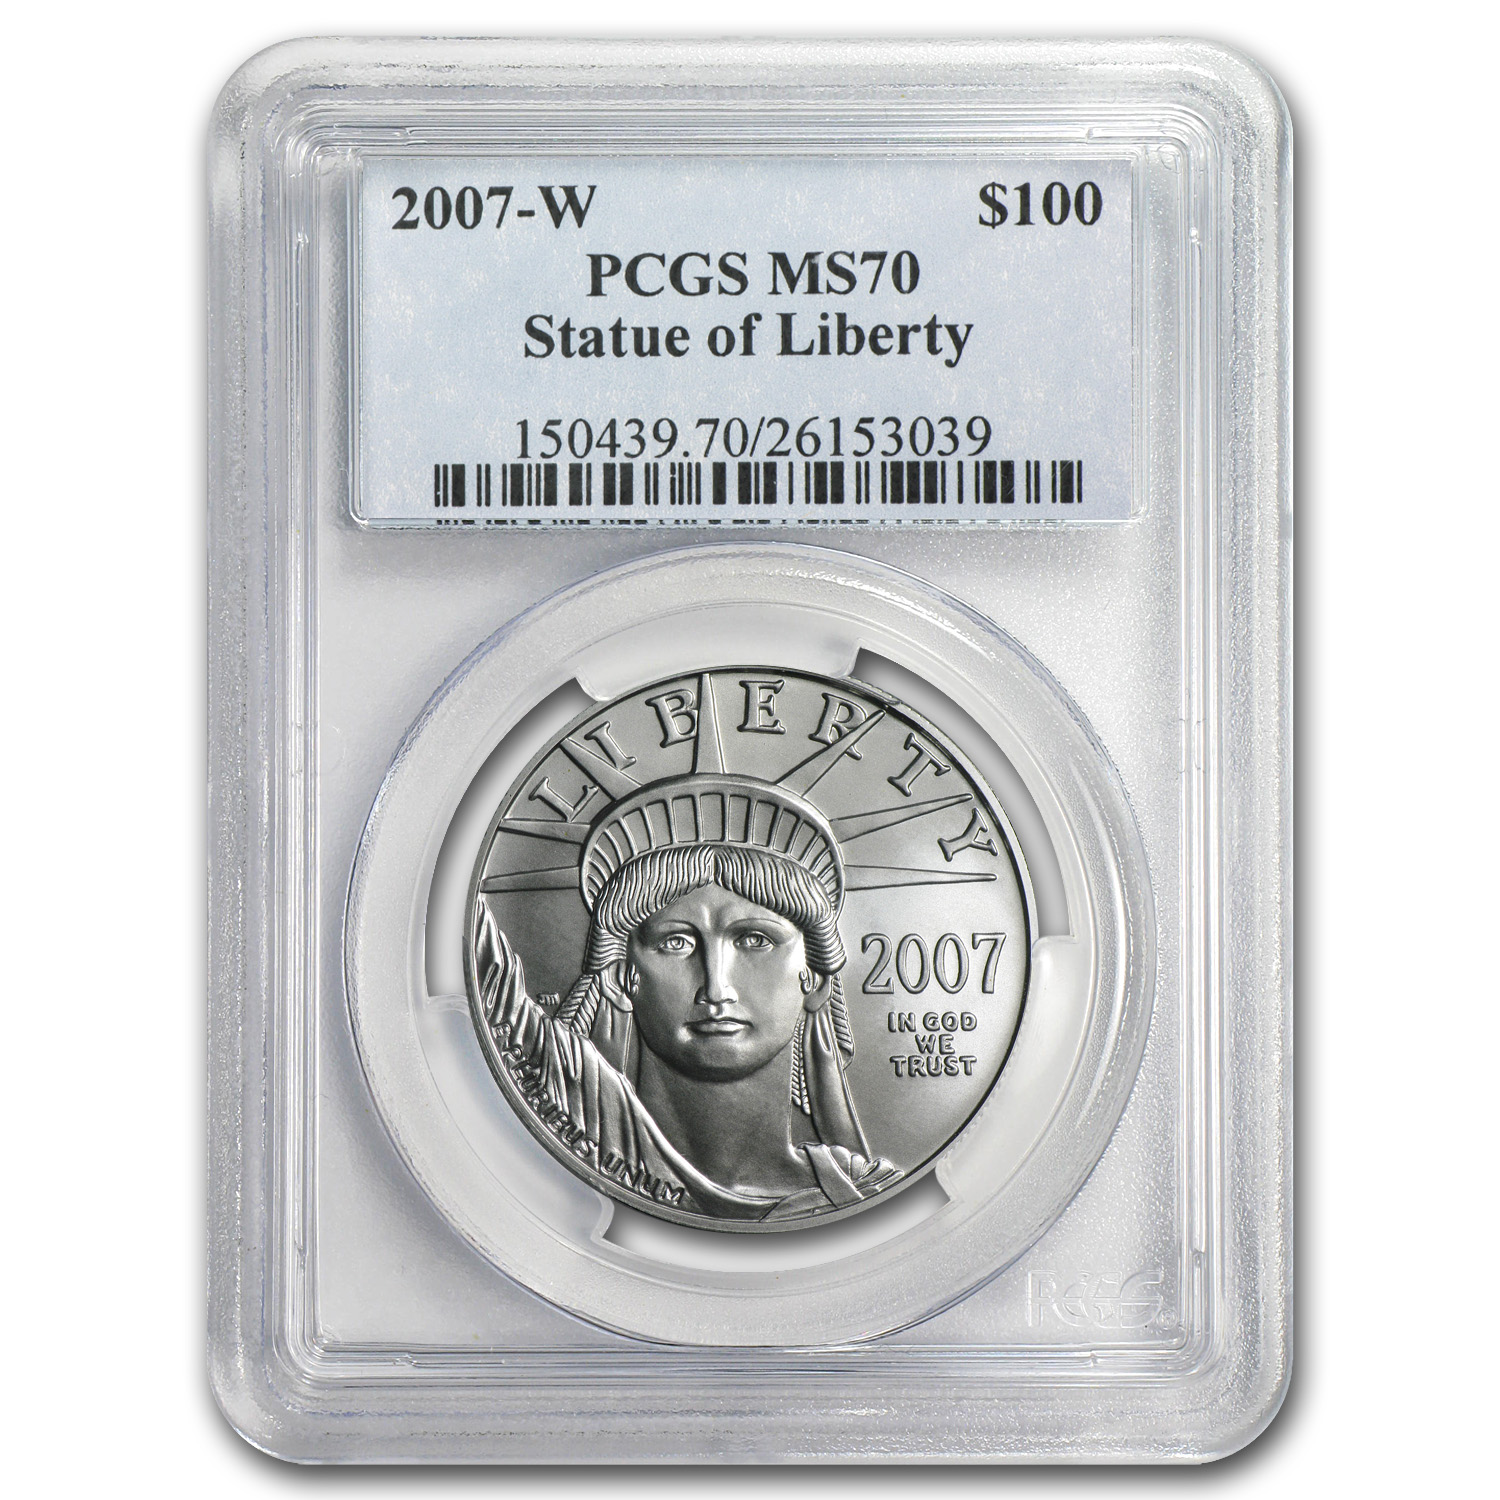 2007-W 1 oz Burnished Platinum American Eagle MS-70 PCGS